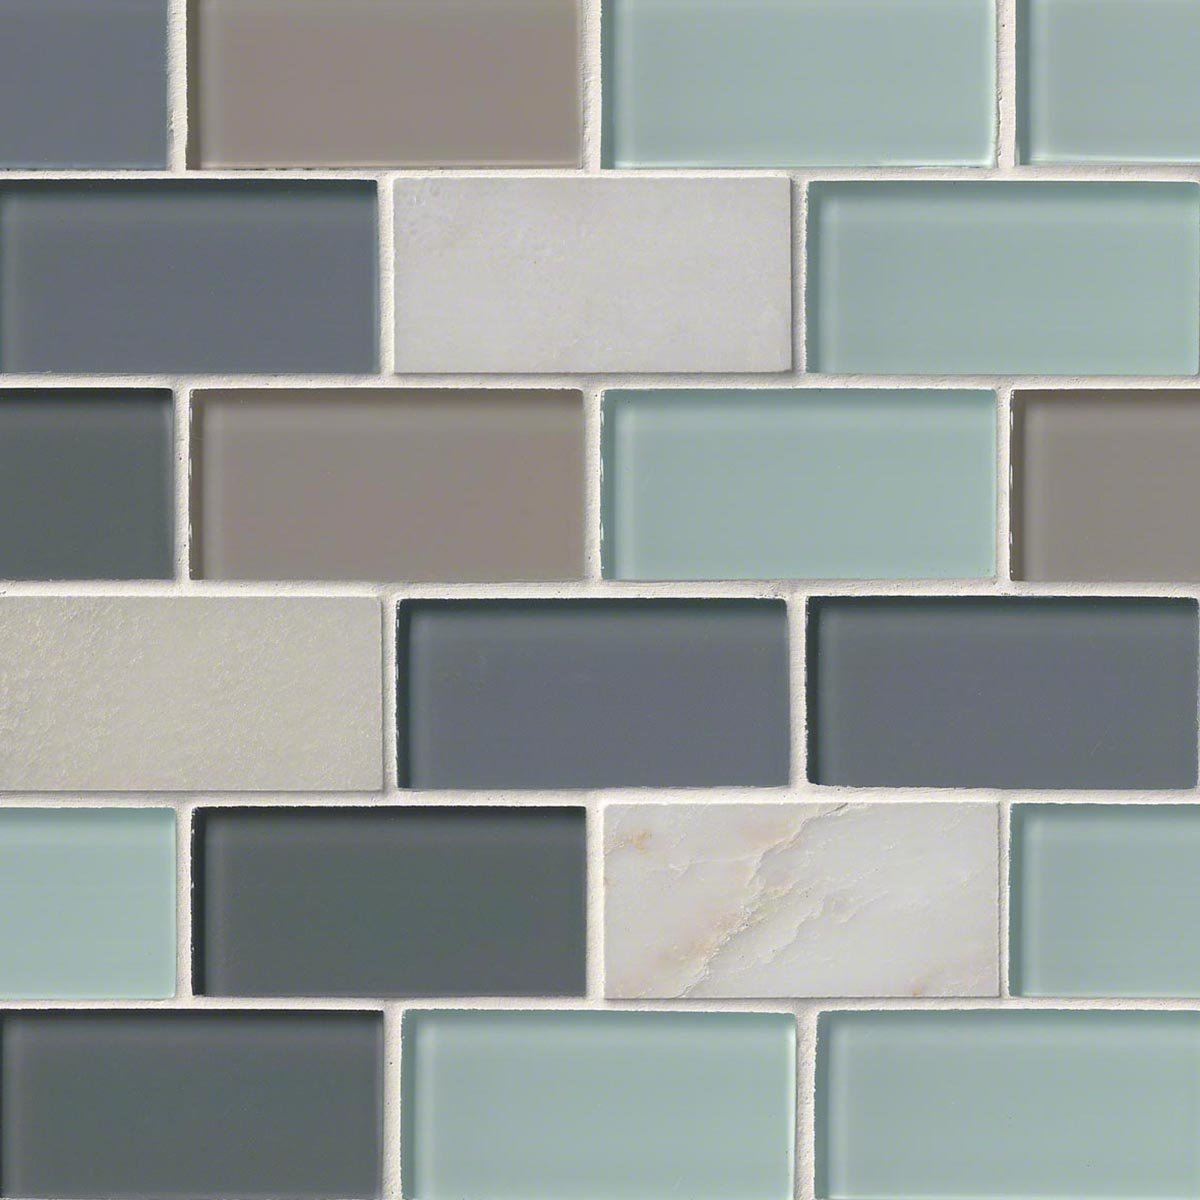 M S International Glacier Peak Subway 12 In. X 12 In. X 8mm Glass Stone Mesh-Mounted Mosaic Tile, (10 sq. ft., 10 pieces per case)